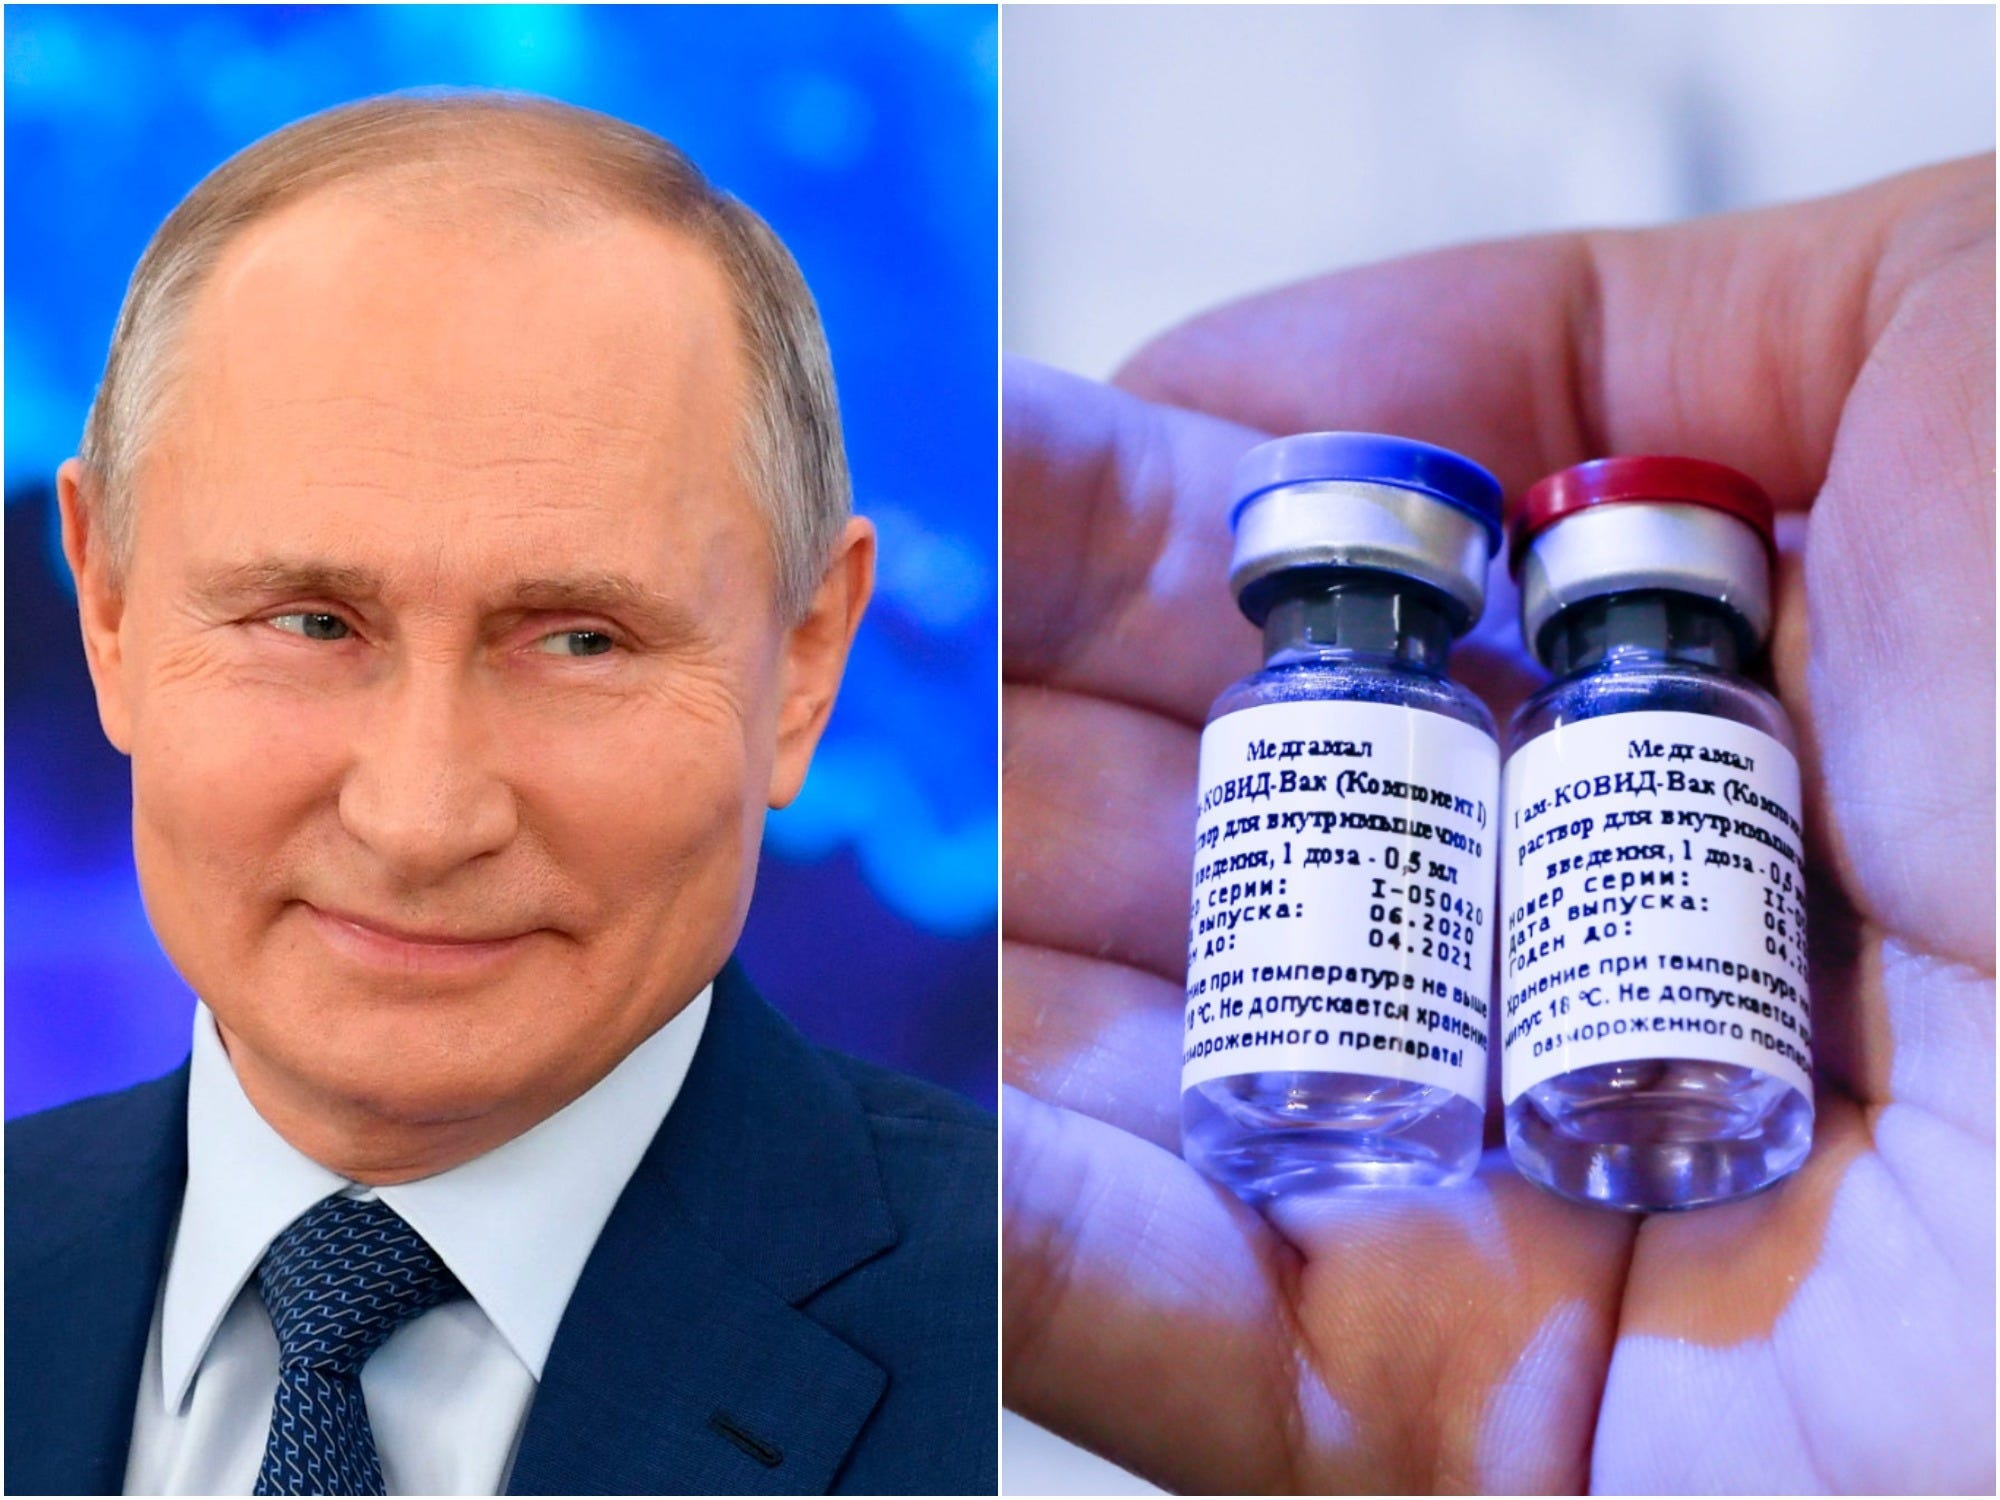 Russia approved a coronavirus vaccine before confirming it was safe and effective. Experts say the nation's risky bet paid off.